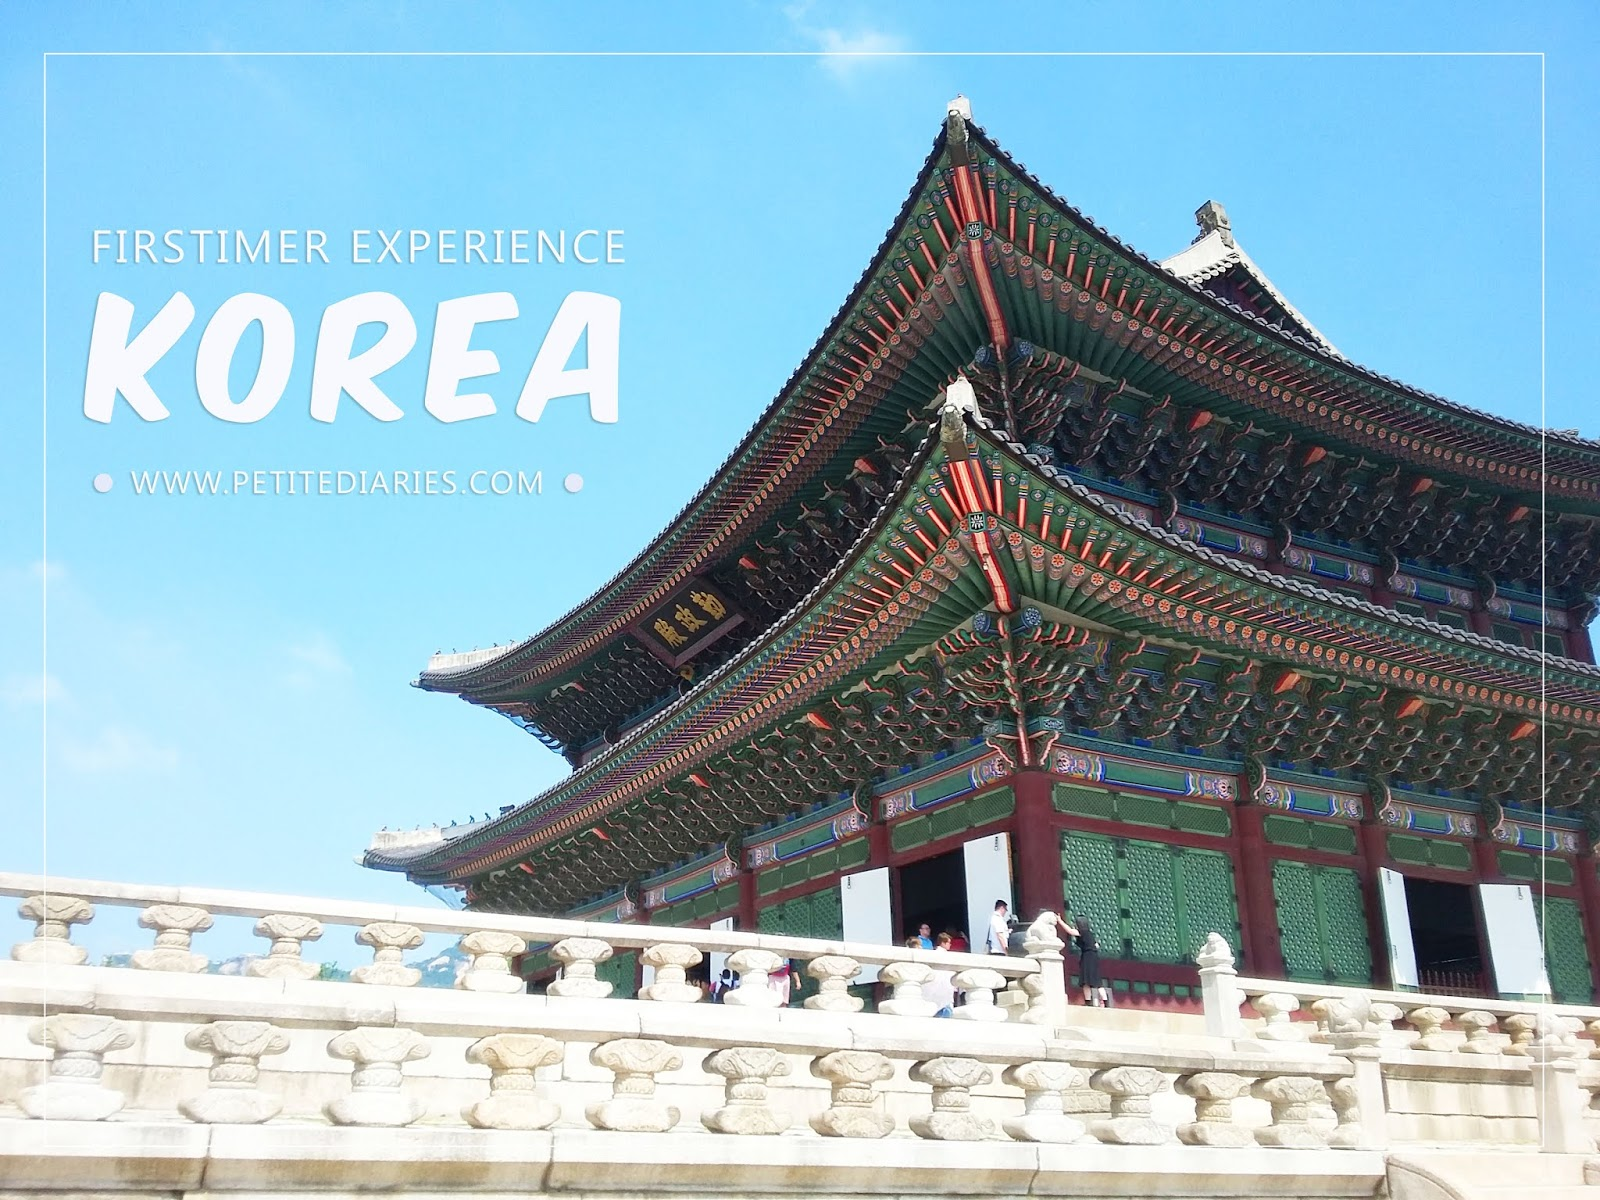 seoul travel firstimer experience